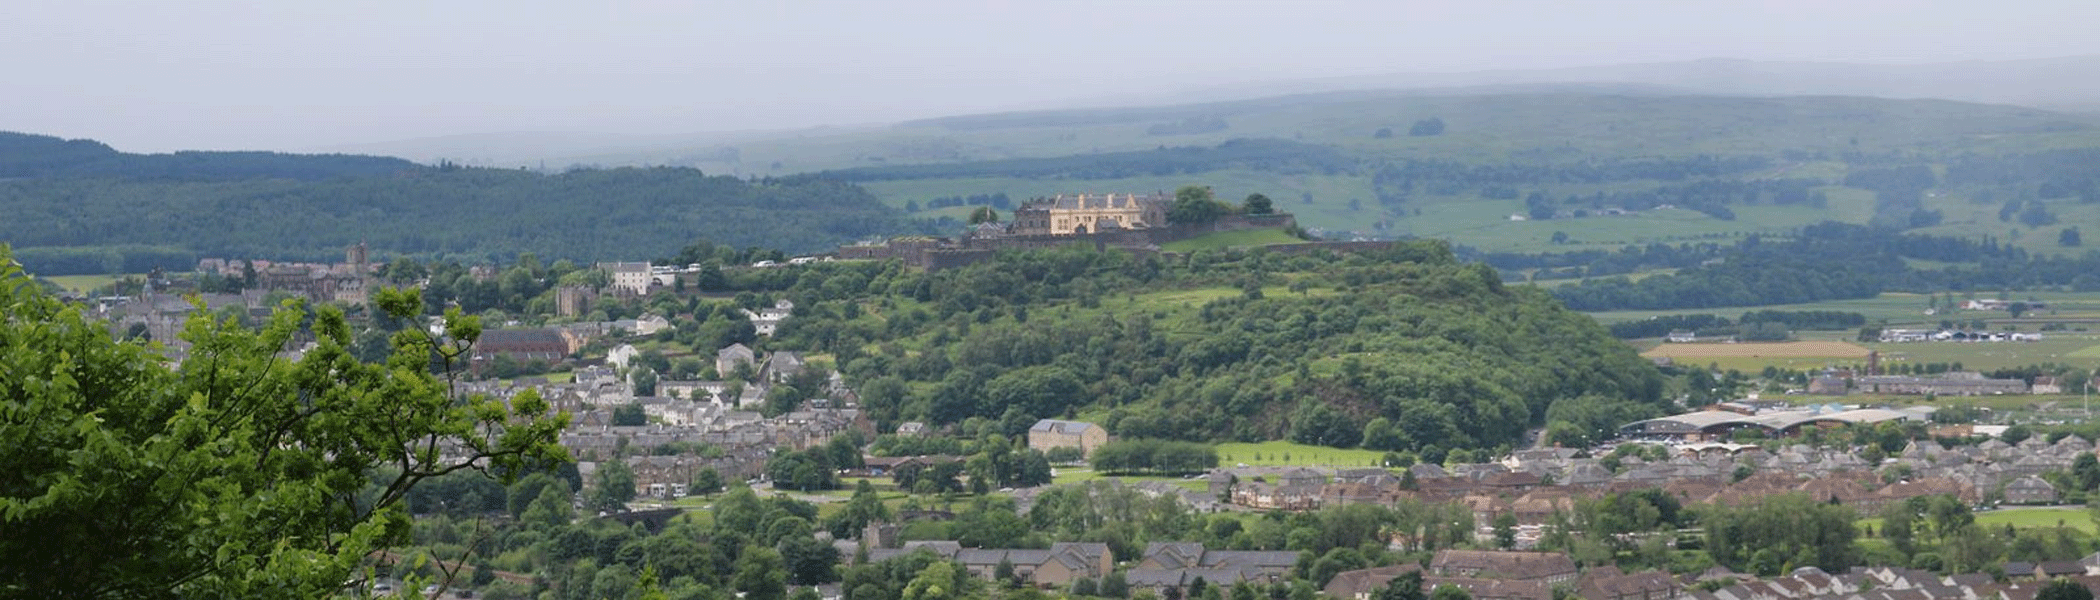 Stirling.co.uk powered by Placeity.com